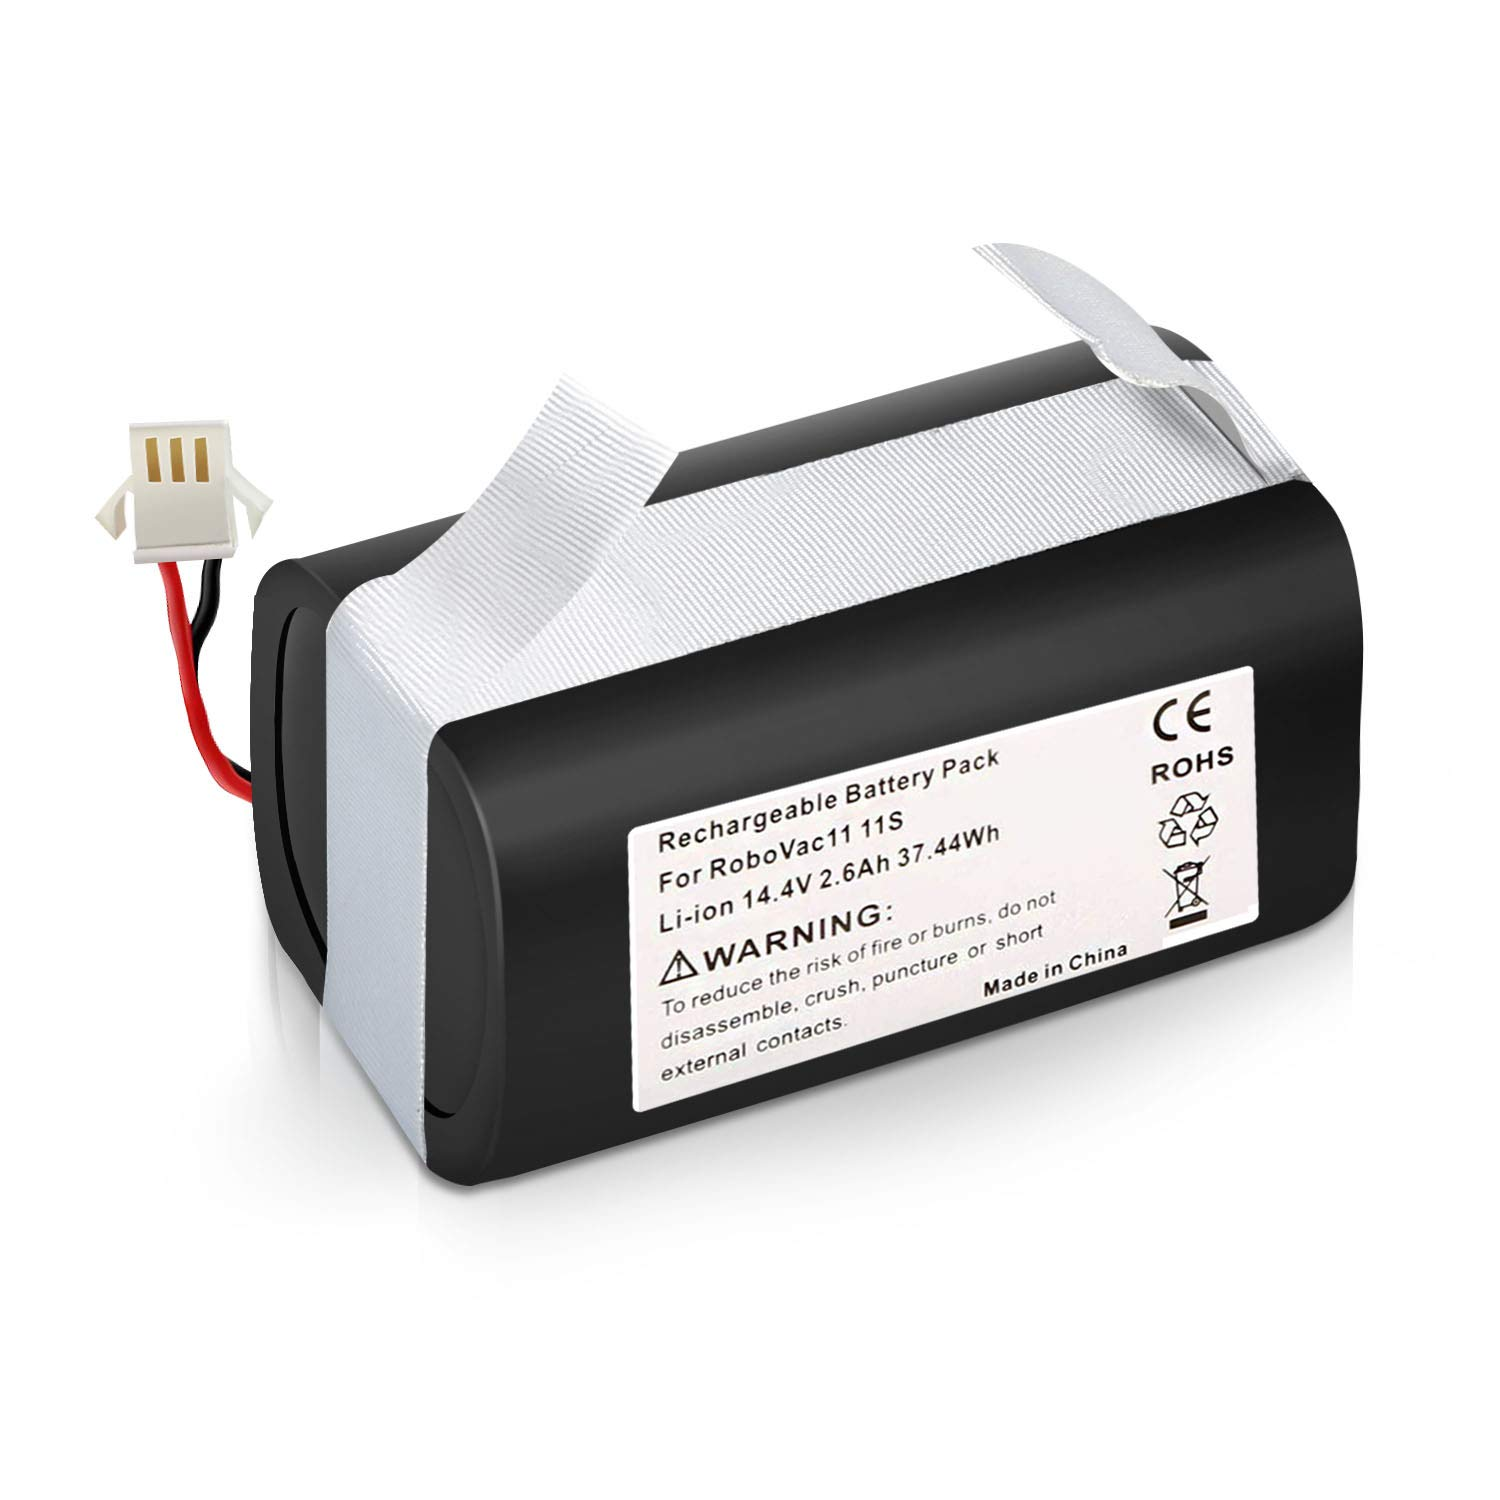 RoboVac 35C RoboVac 11S RoboVac 11 RoboVac 15C,RoboVac 12 RoboVac 30 Amityke RoboVac 14.4V 2600mAh Li-ion Rechargeable Battery Compatible with Deebot N79S Deebot DN622